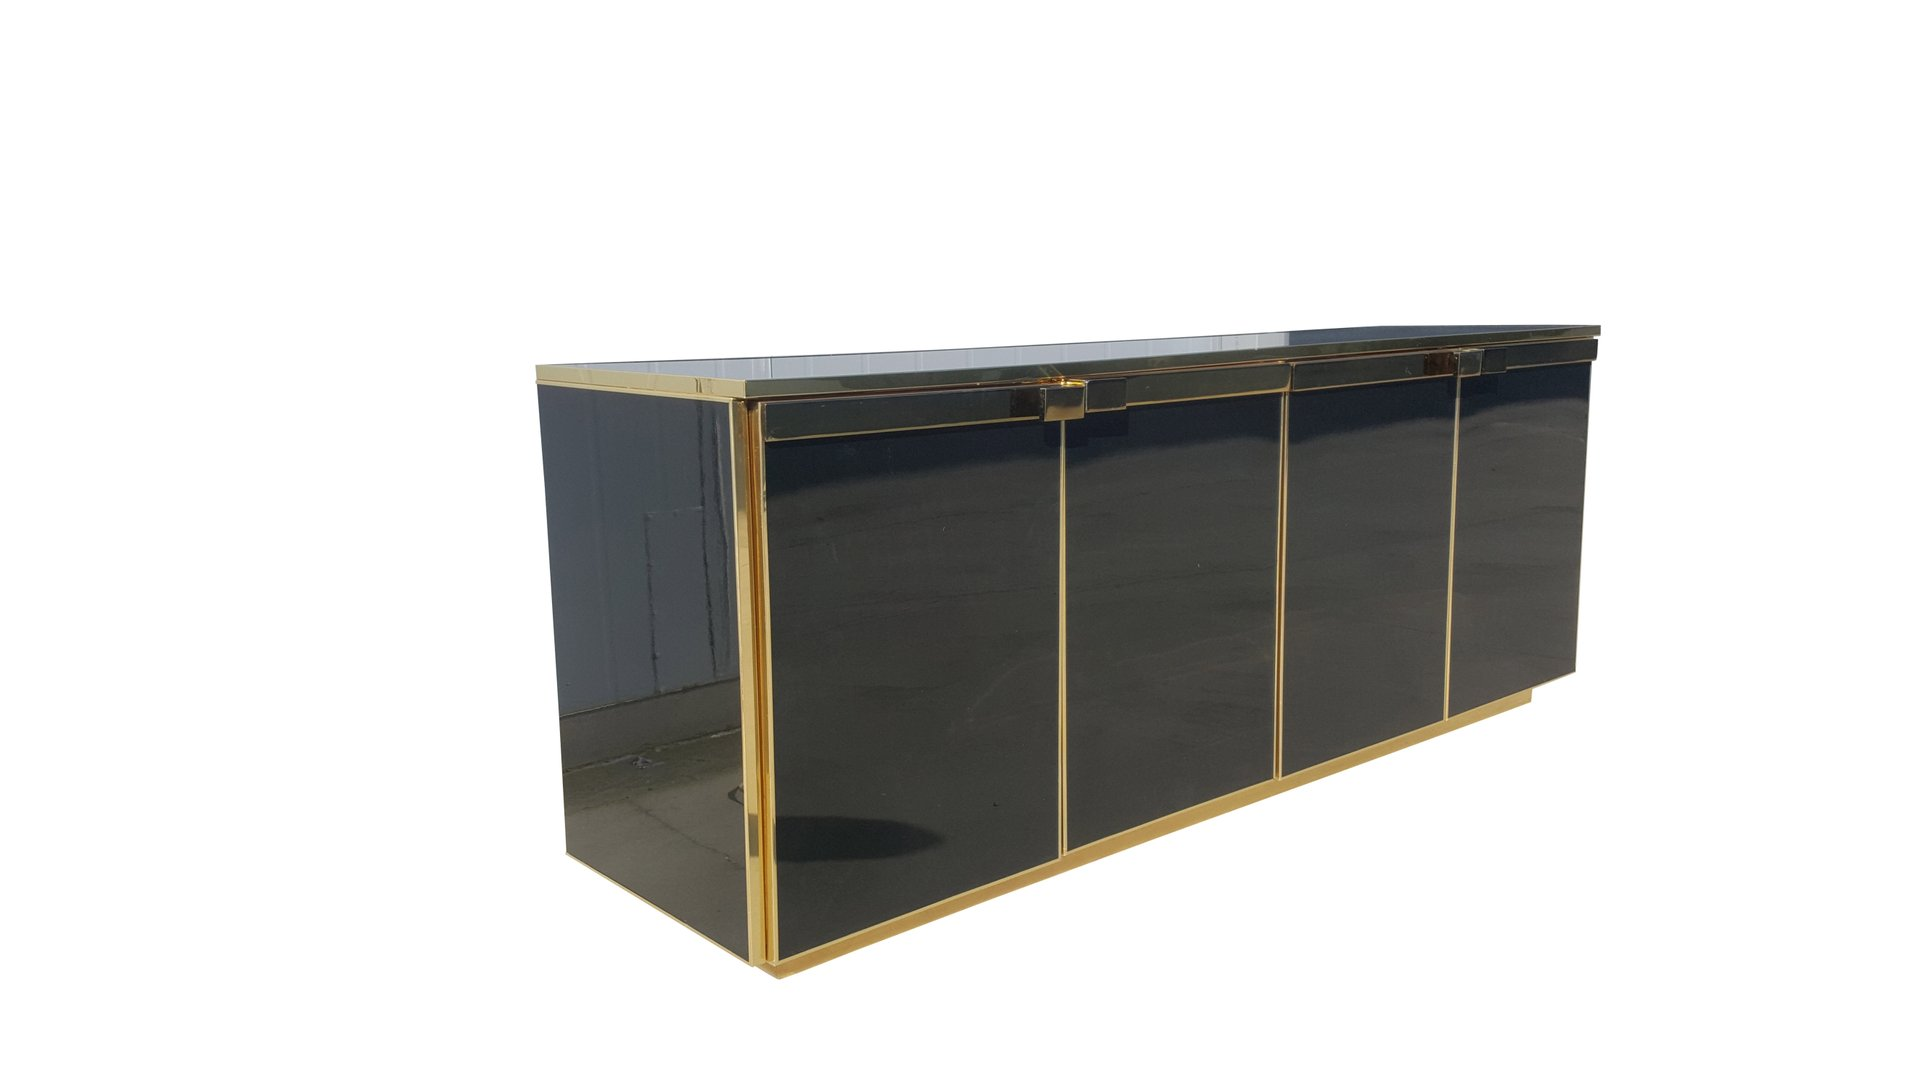 Brass and Black Glass Five Doors Credenza from Maison Jansen 1970s for sale at Pamono  sc 1 st  Pamono & Brass and Black Glass Five Doors Credenza from Maison Jansen 1970s ...